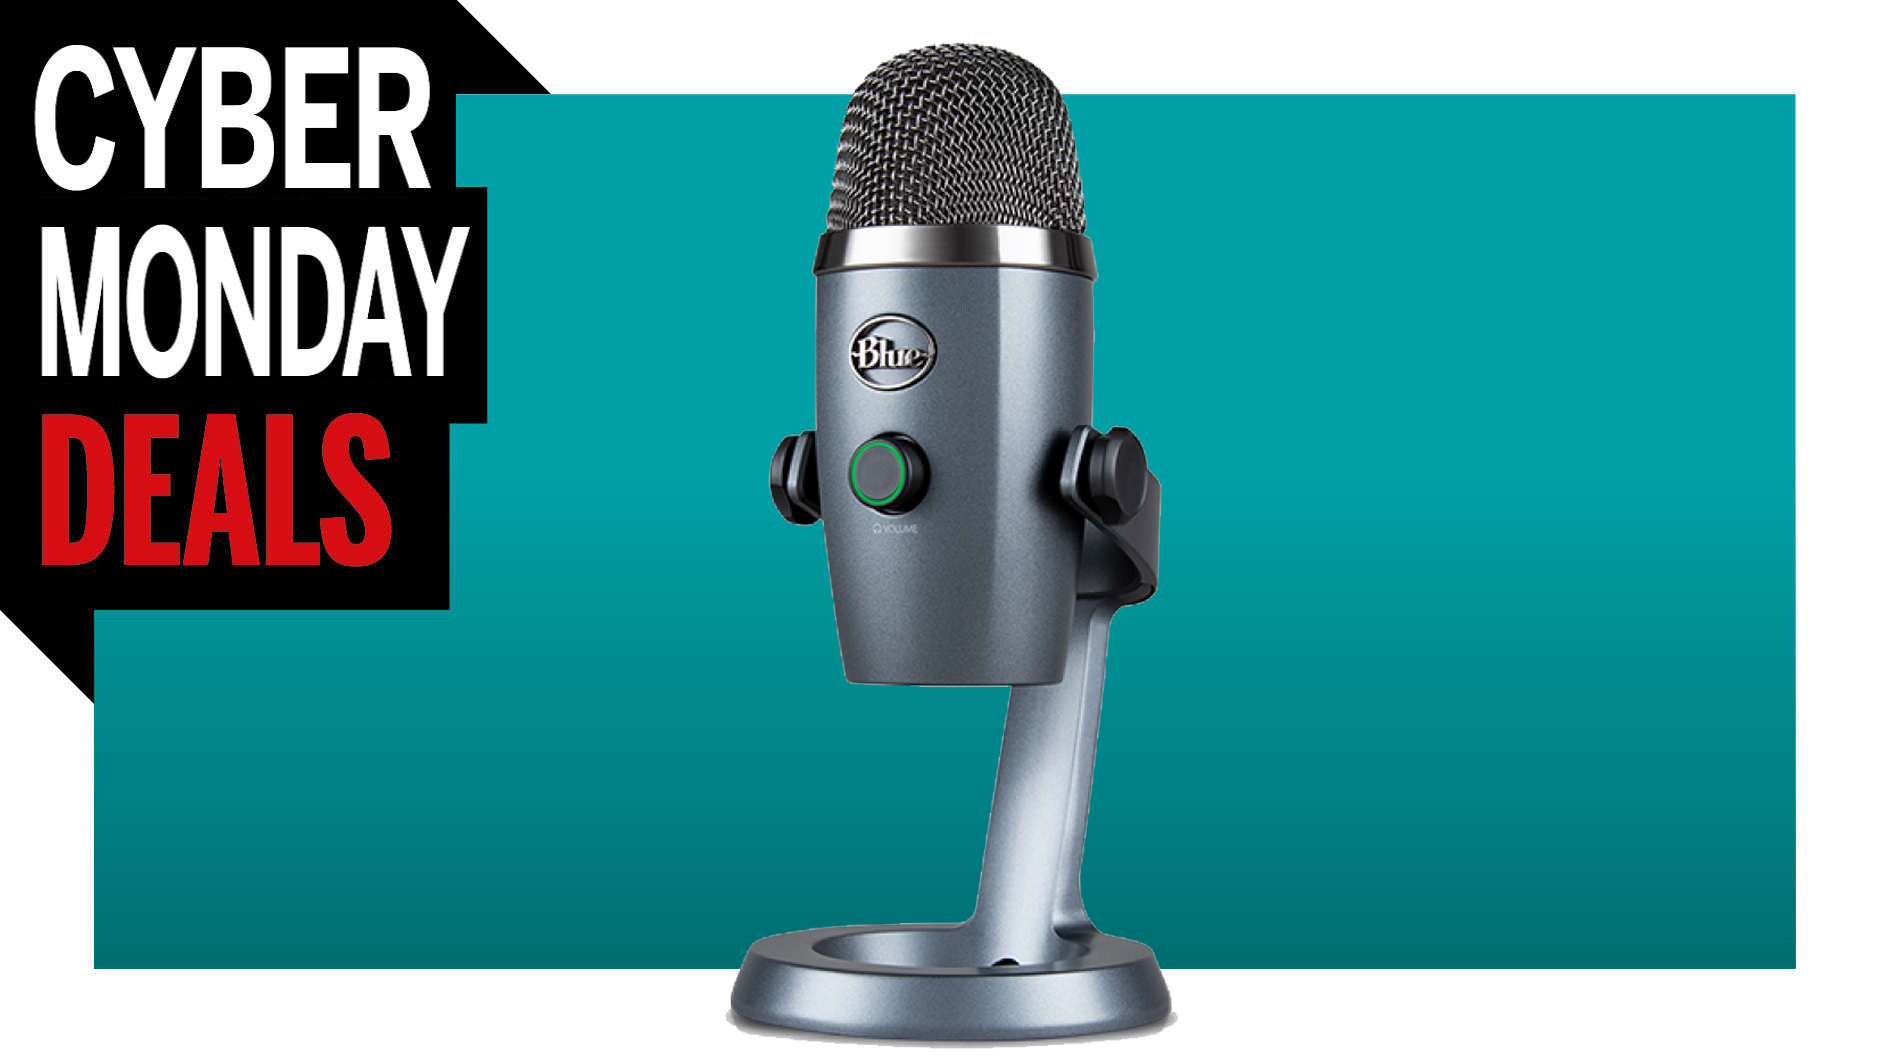 The adorable Blue Yeti Nano microphone is just $100